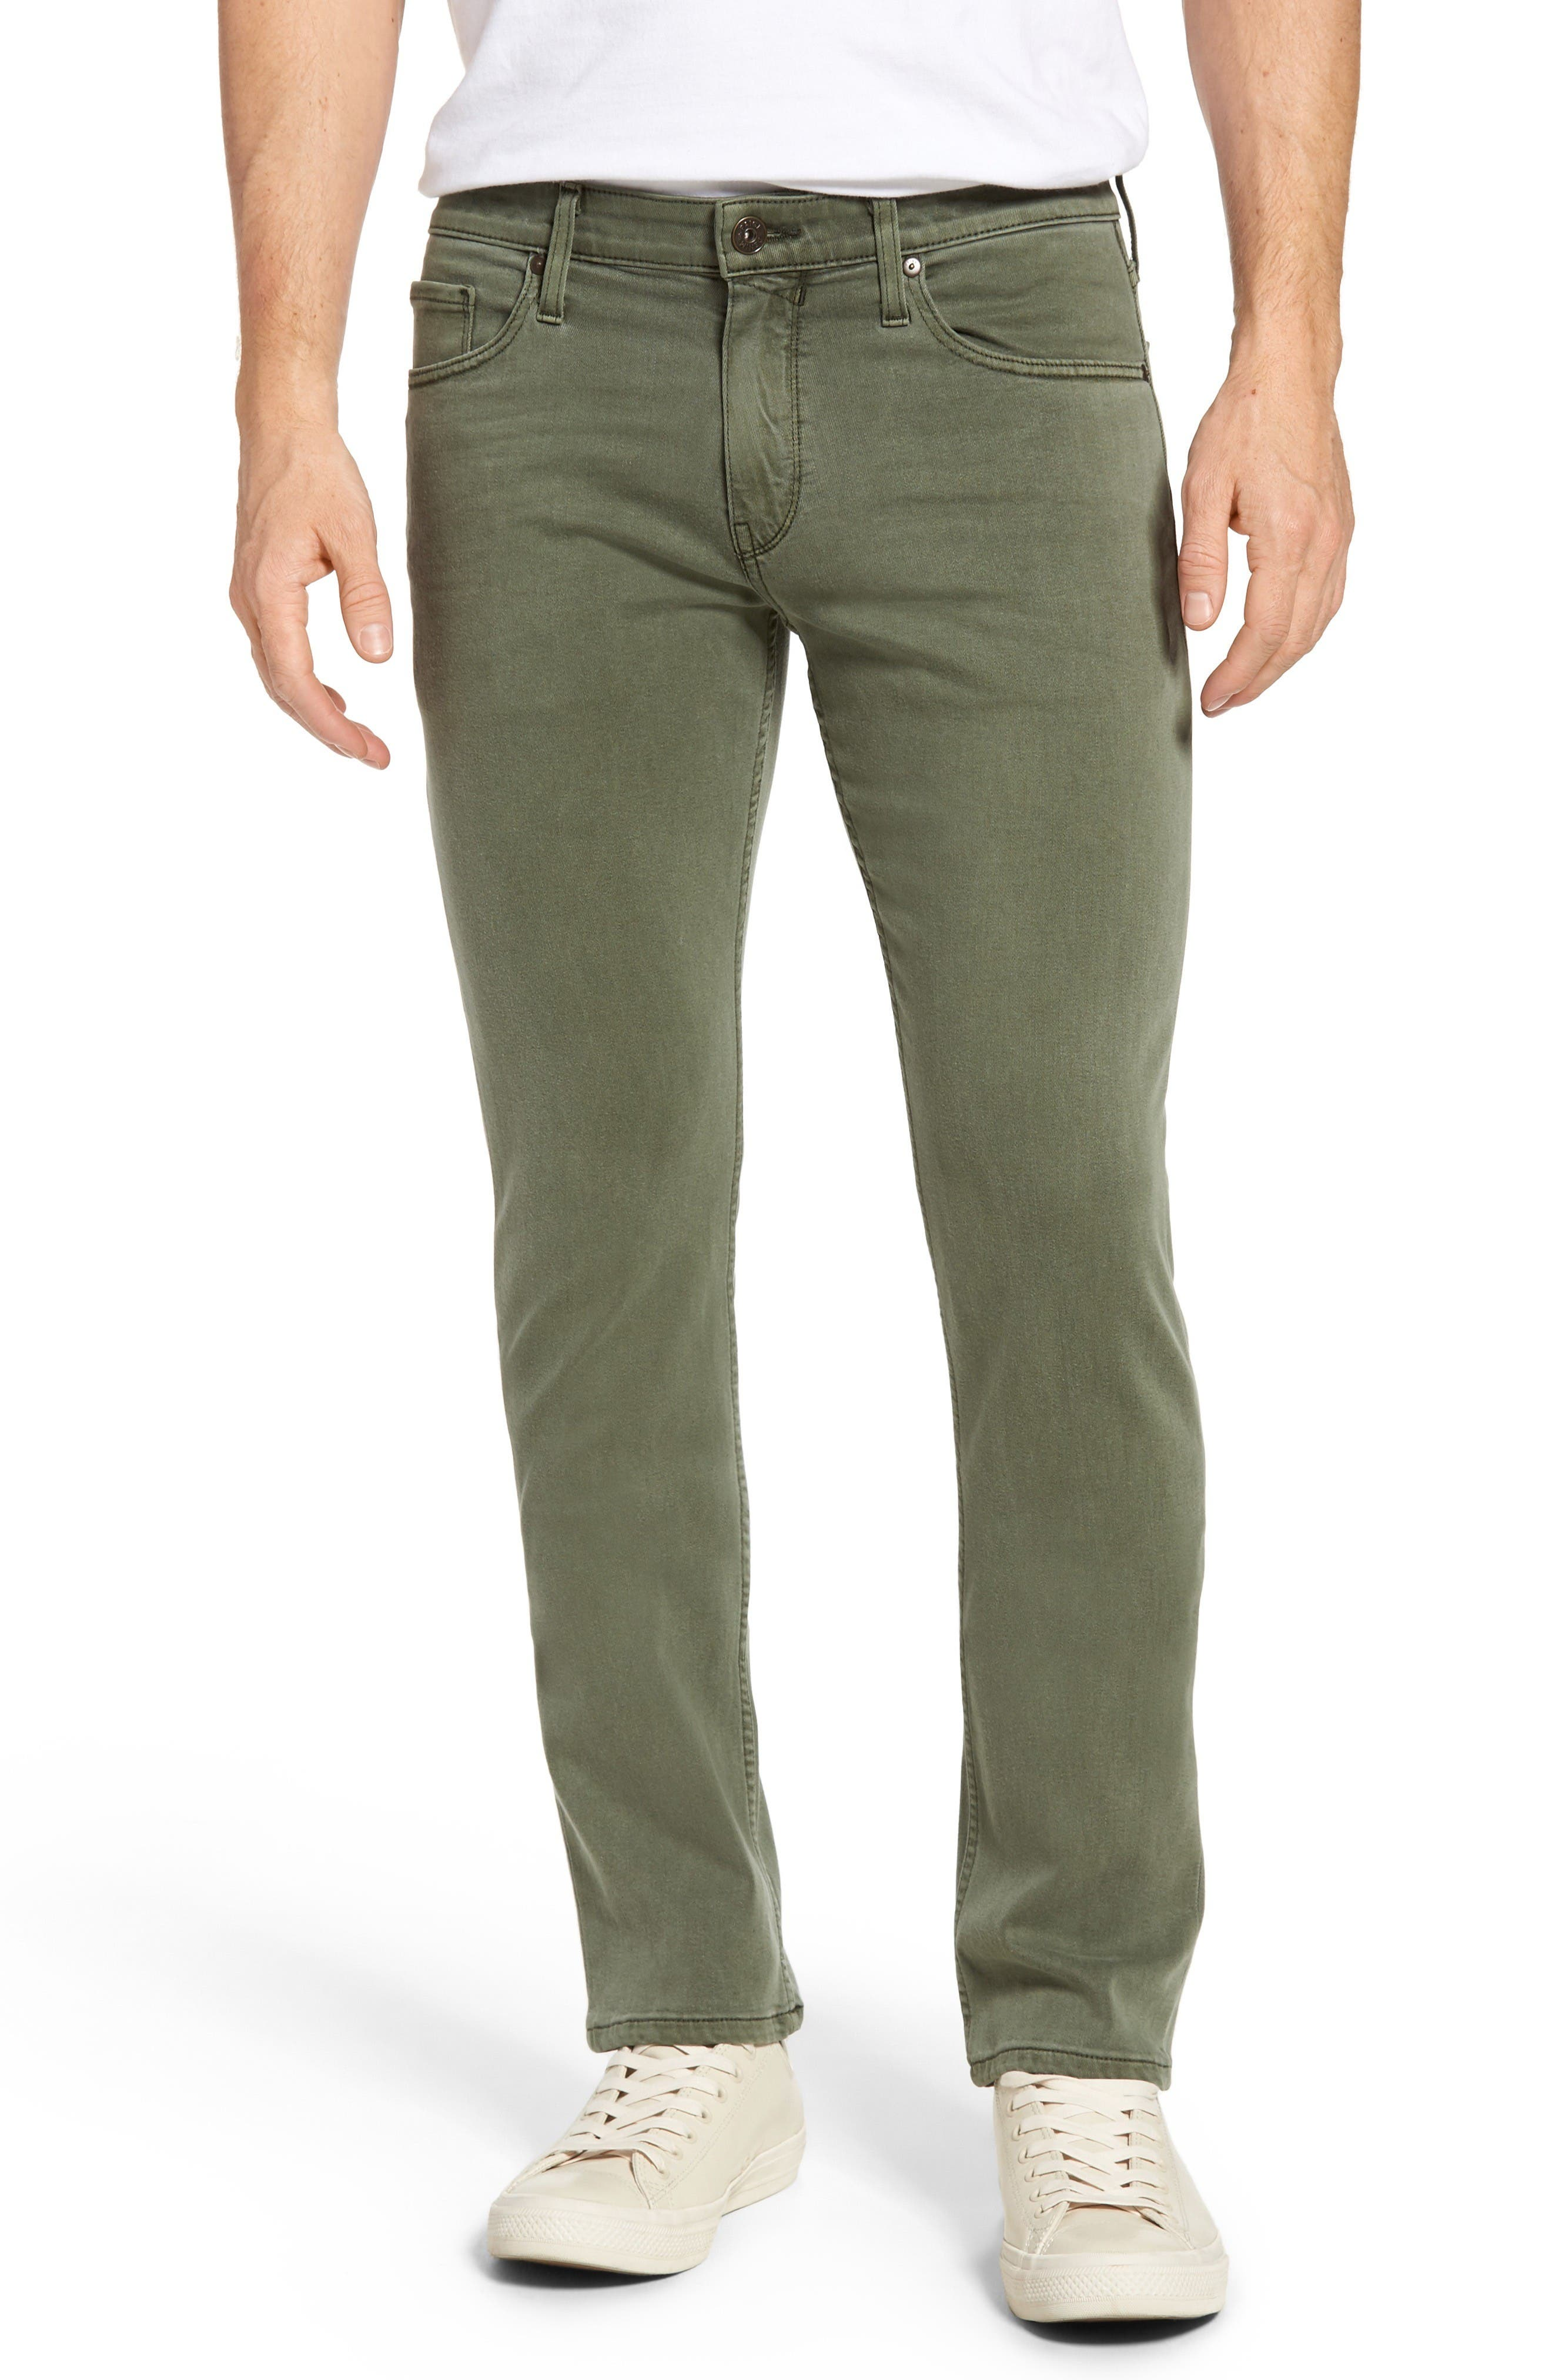 Transcend - Federal Slim Straight Leg Jeans,                         Main,                         color, Green House